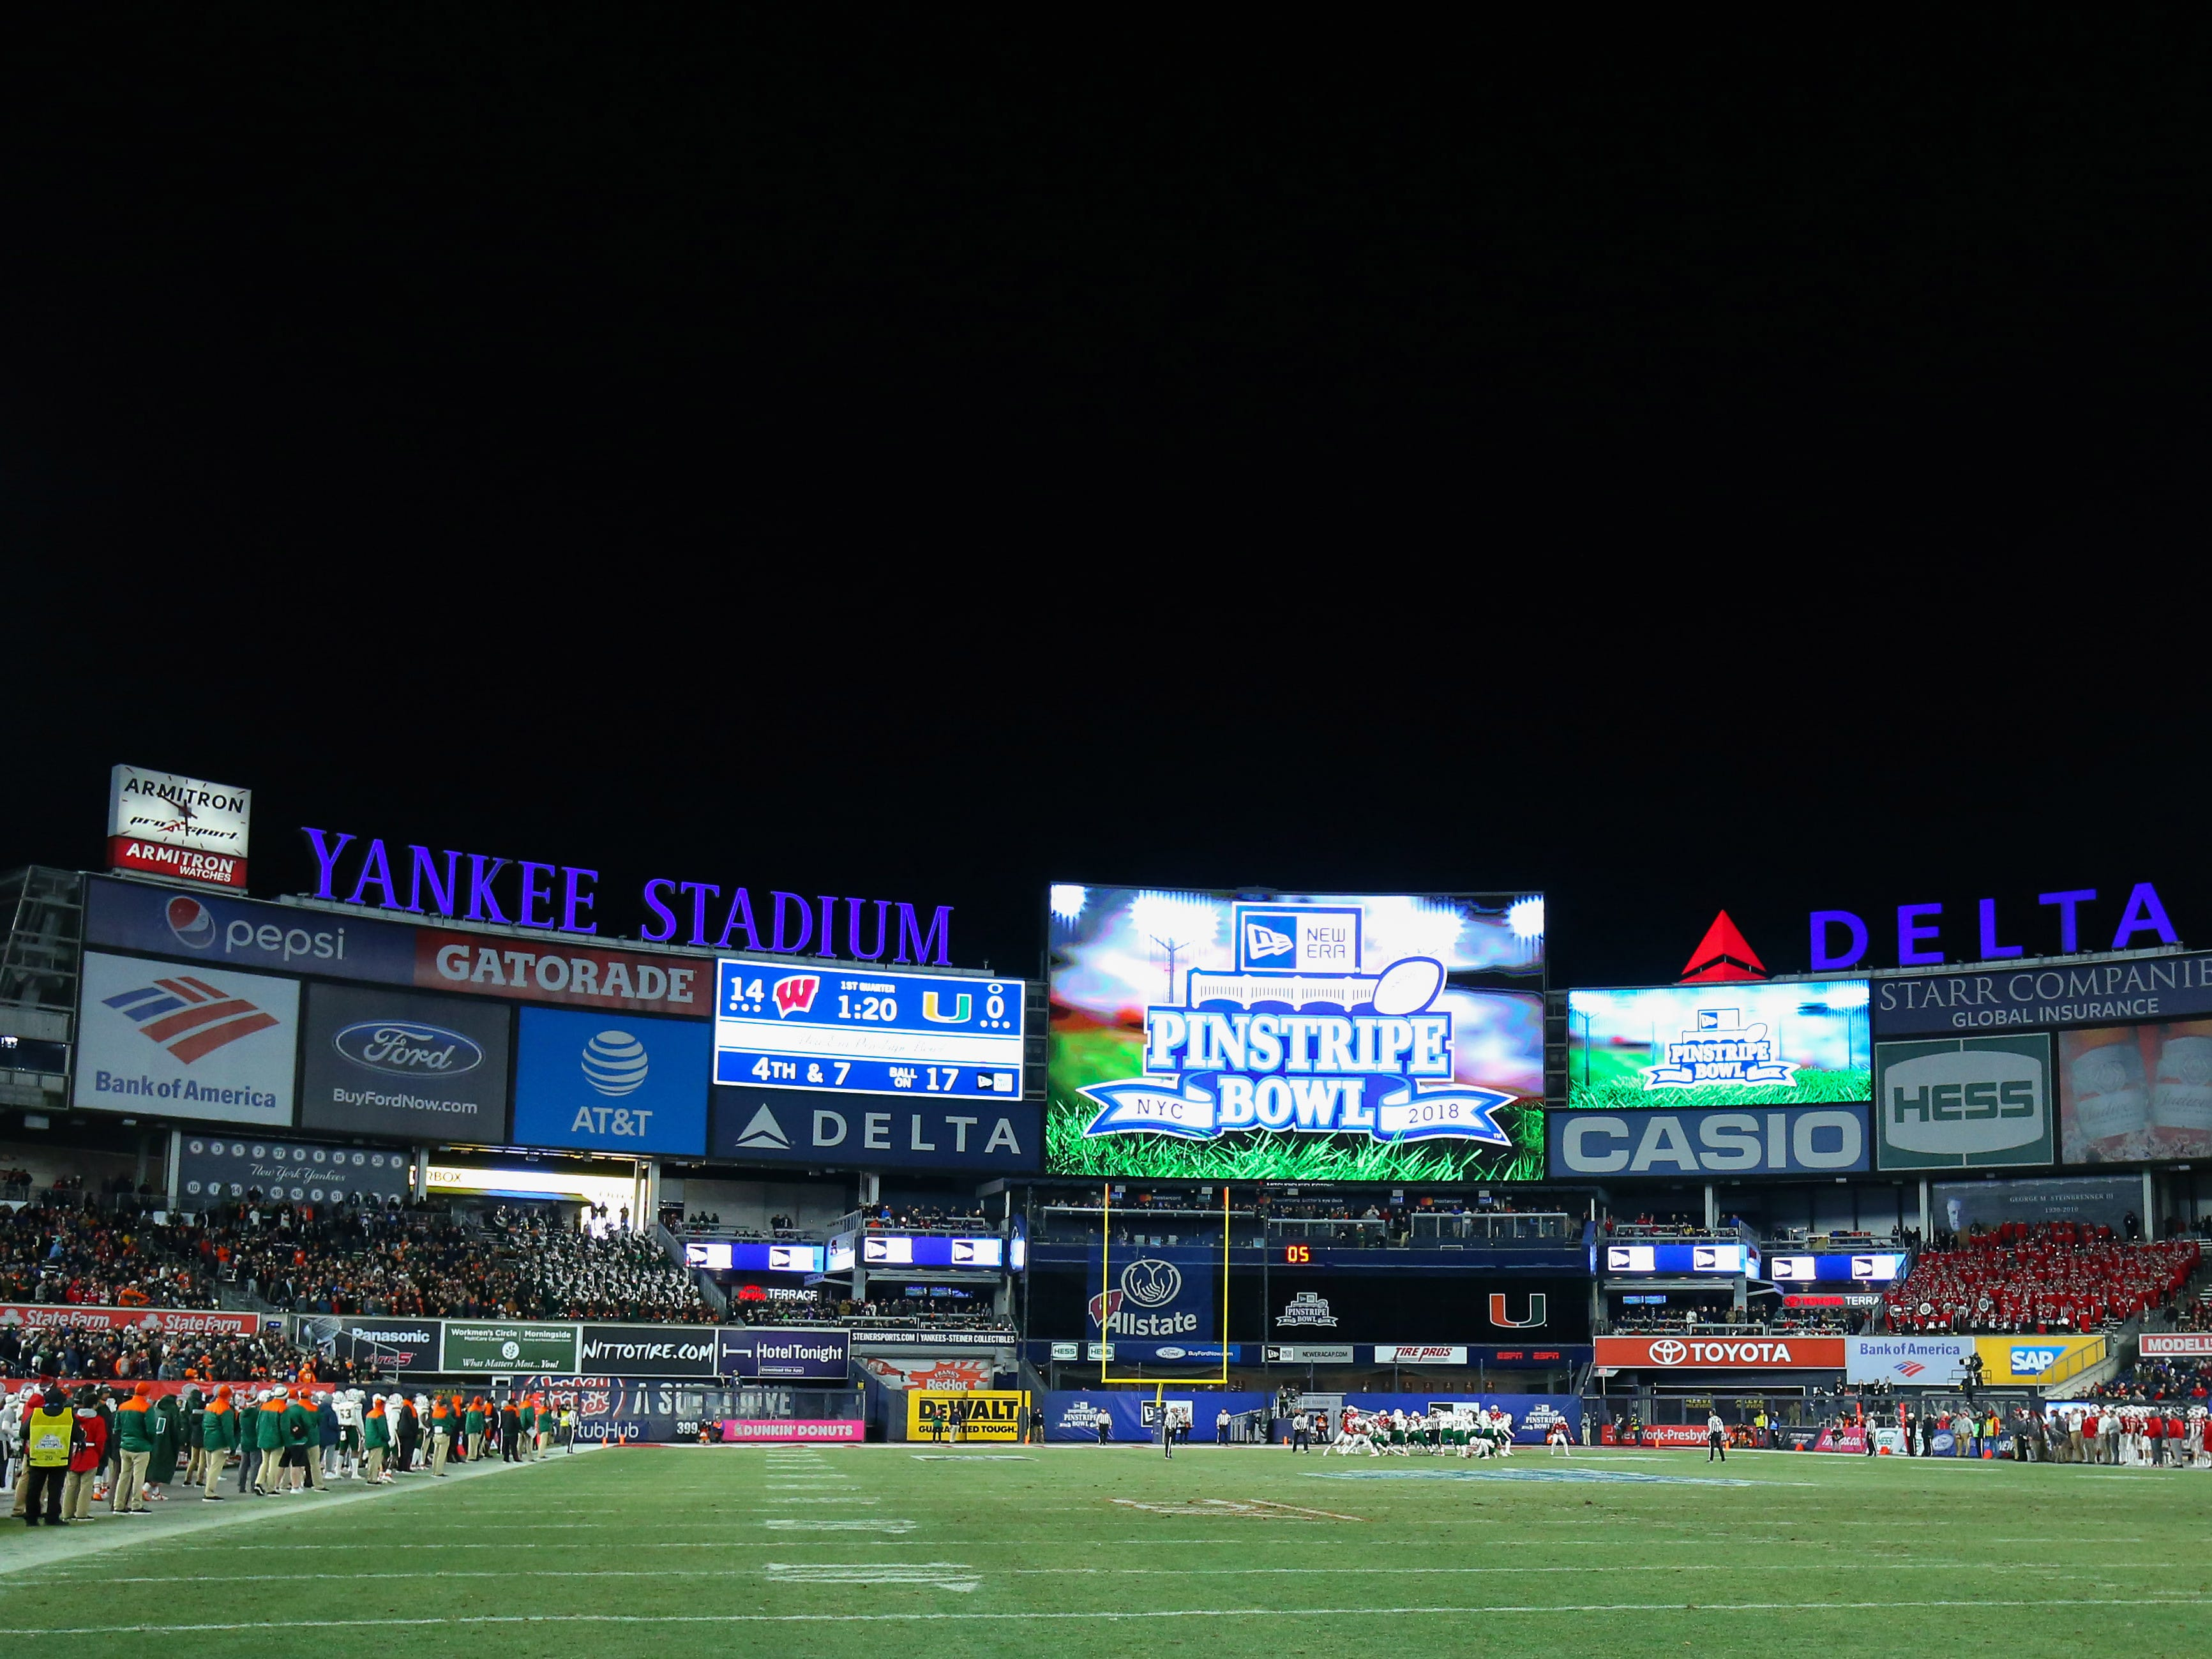 A general view of Yankee Stadium during the game between Miami and Wisconsin in the Pinstripe Bowl.